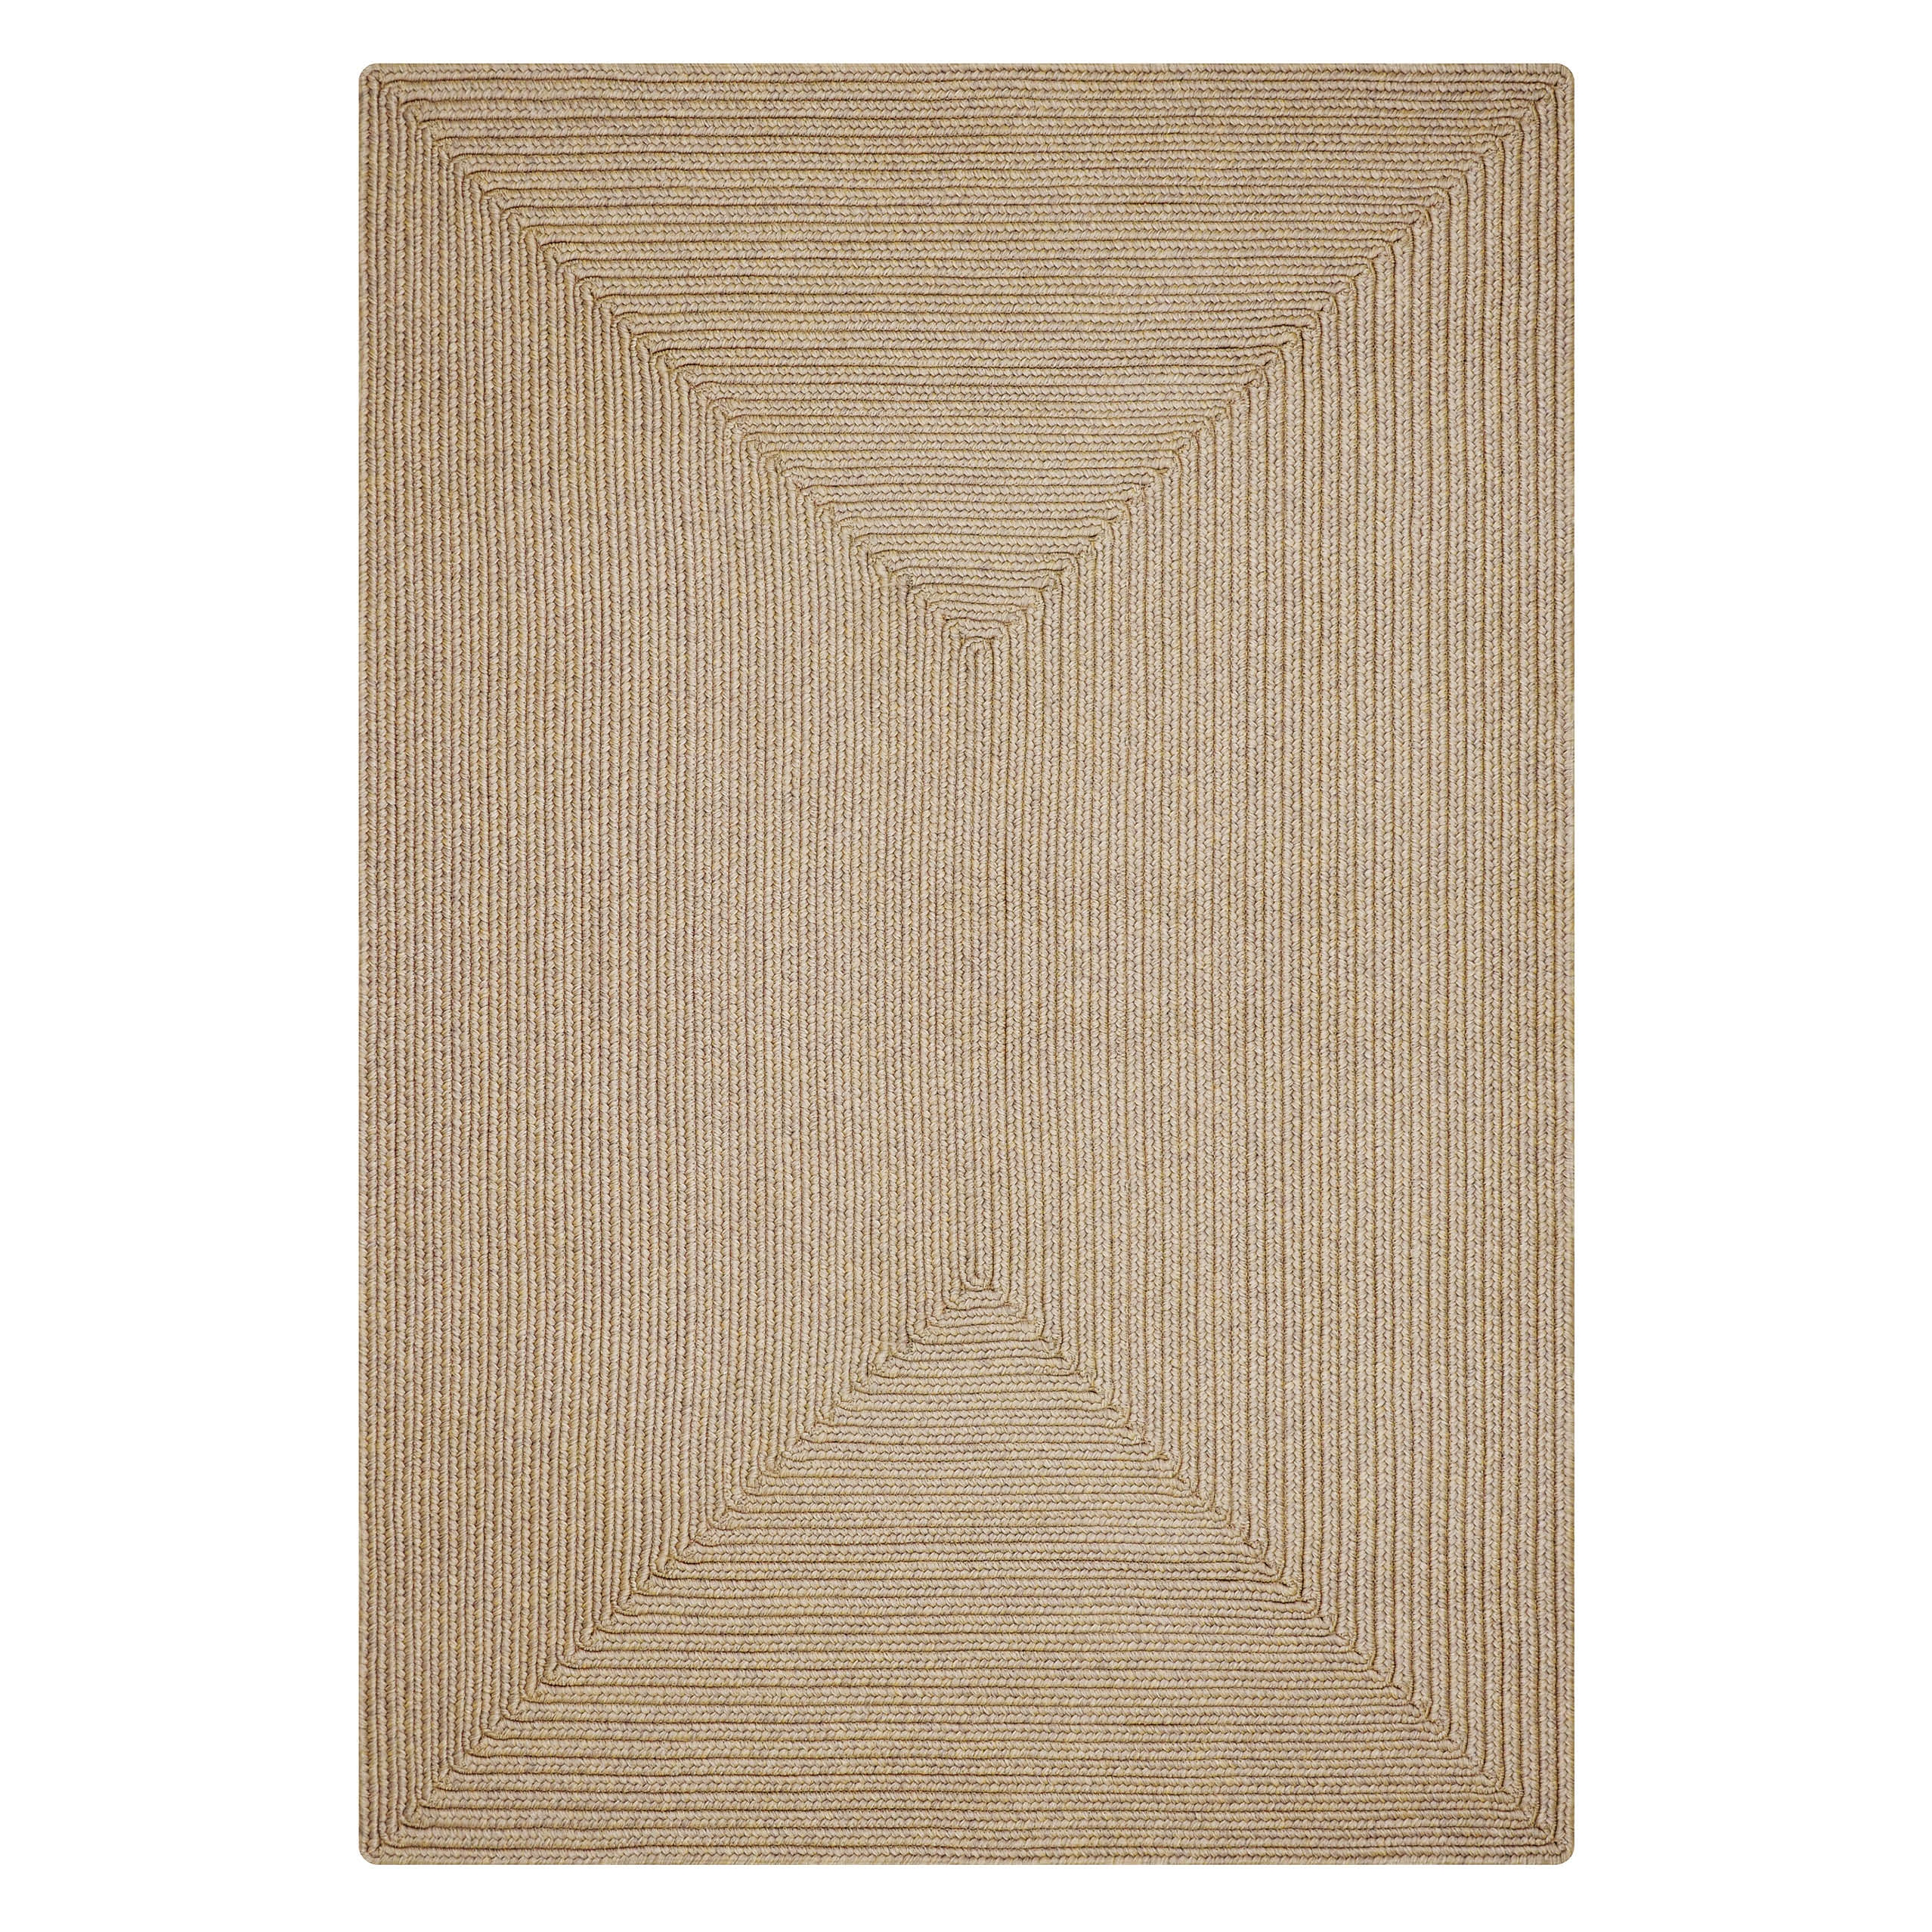 Biscuit Brown Ultra Durable Braided Rectangular Rugs